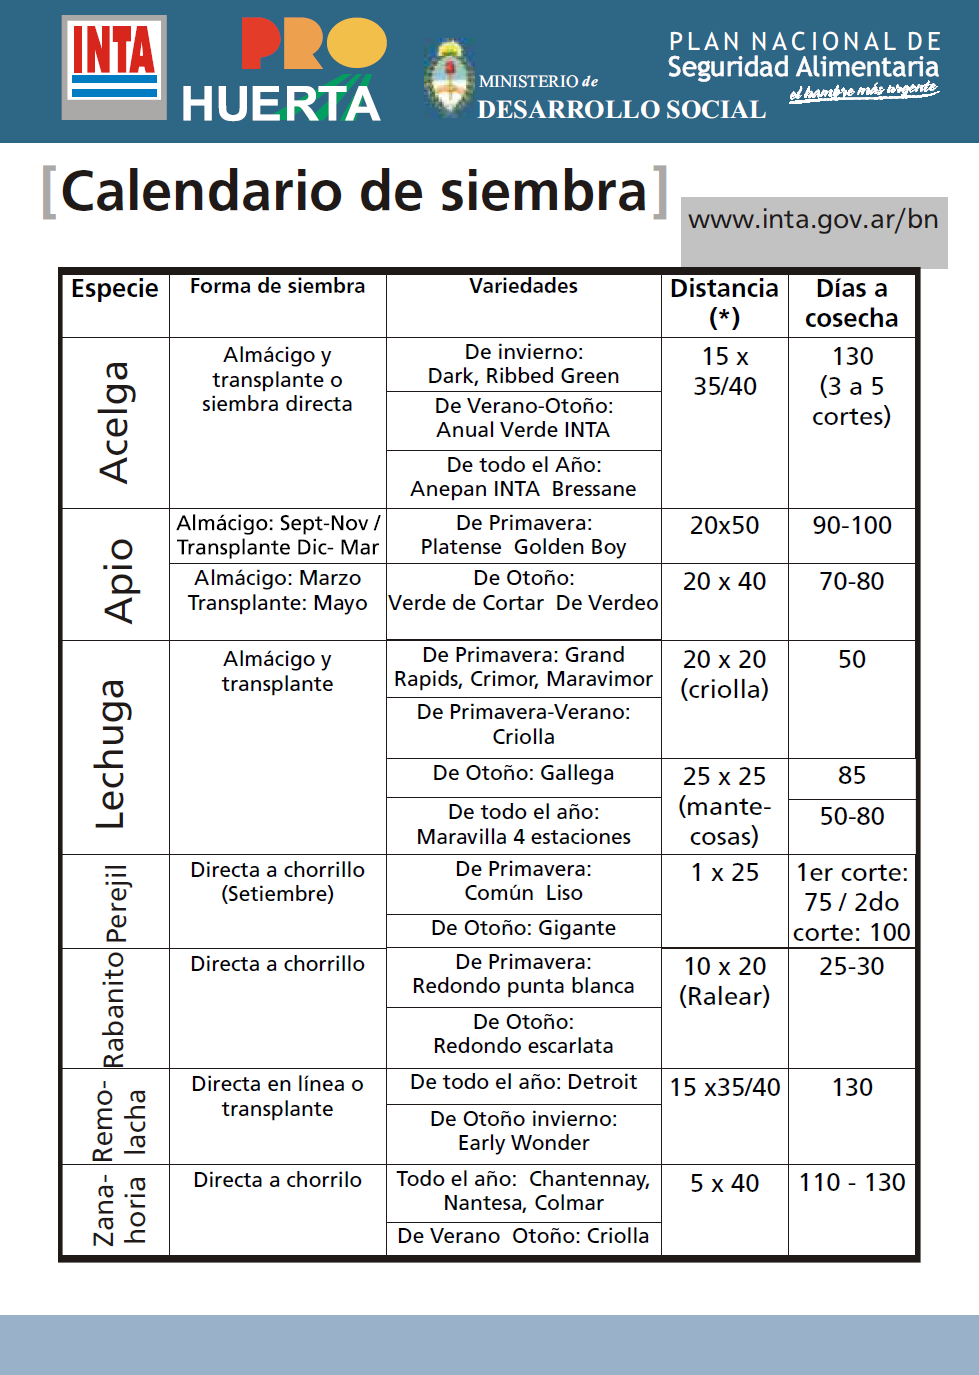 copy2_of_CalendariodeSiembra2.jpg